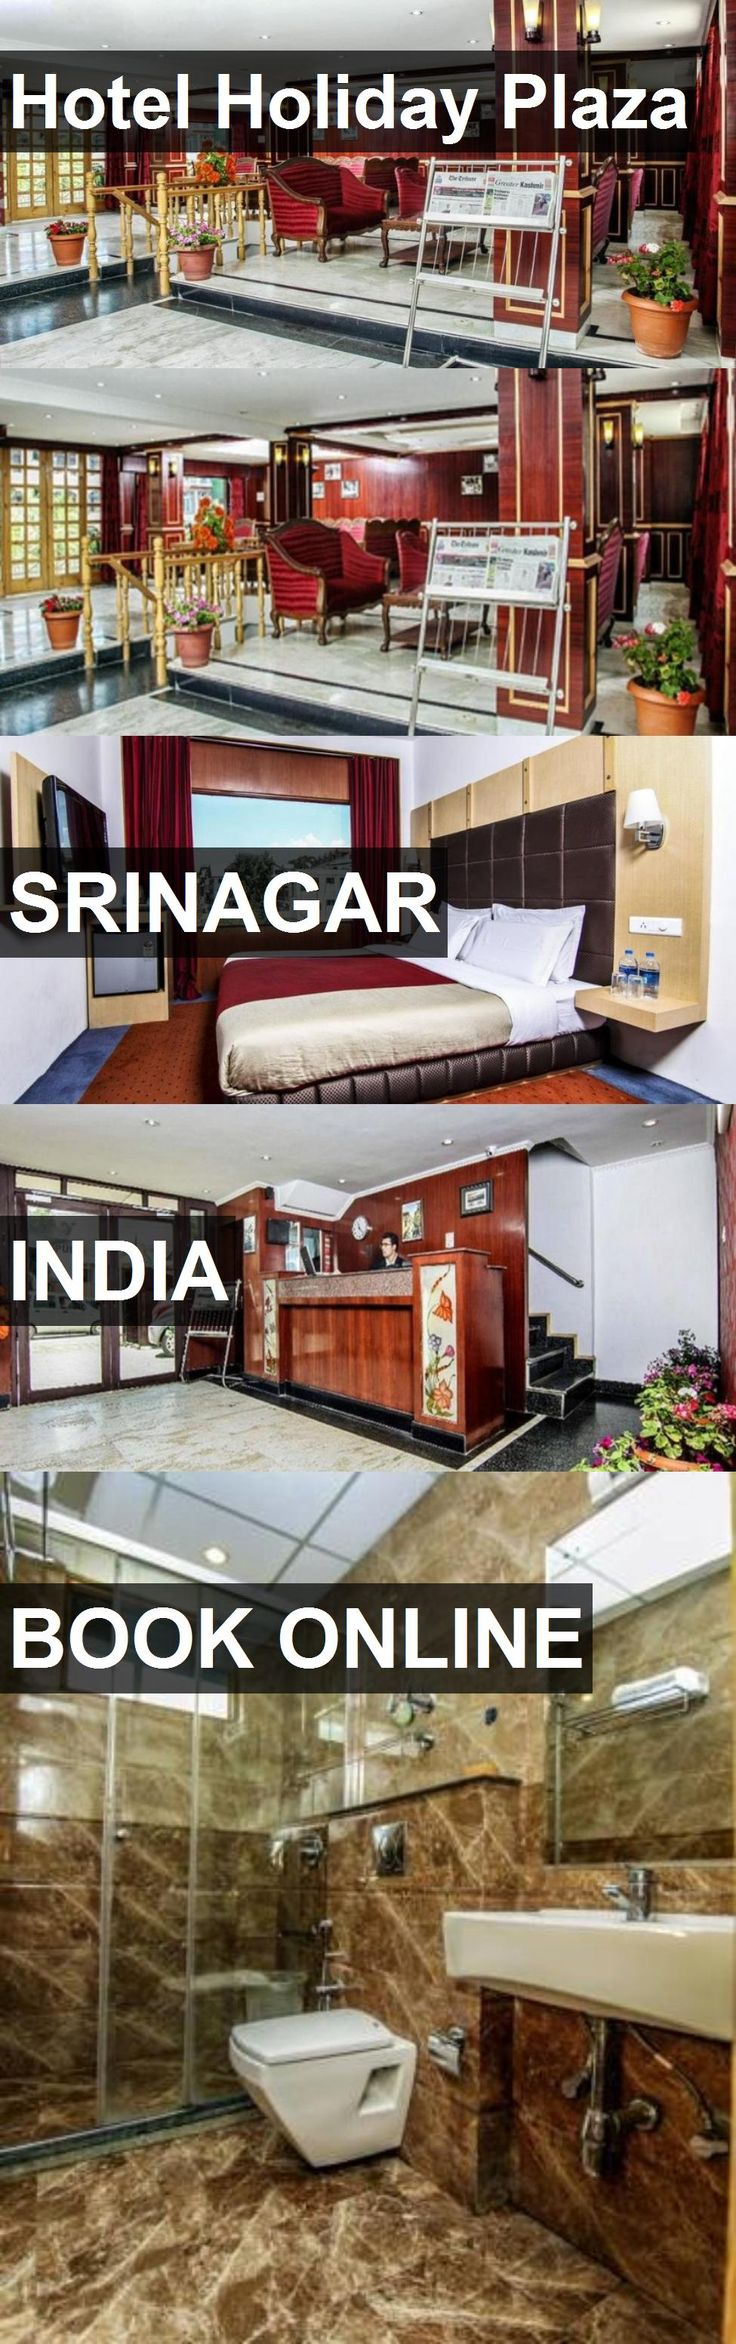 Hotel Hotel Holiday Plaza in Srinagar, India. For more information, photos, reviews and best prices please follow the link. #India #Srinagar #hotel #travel #vacation